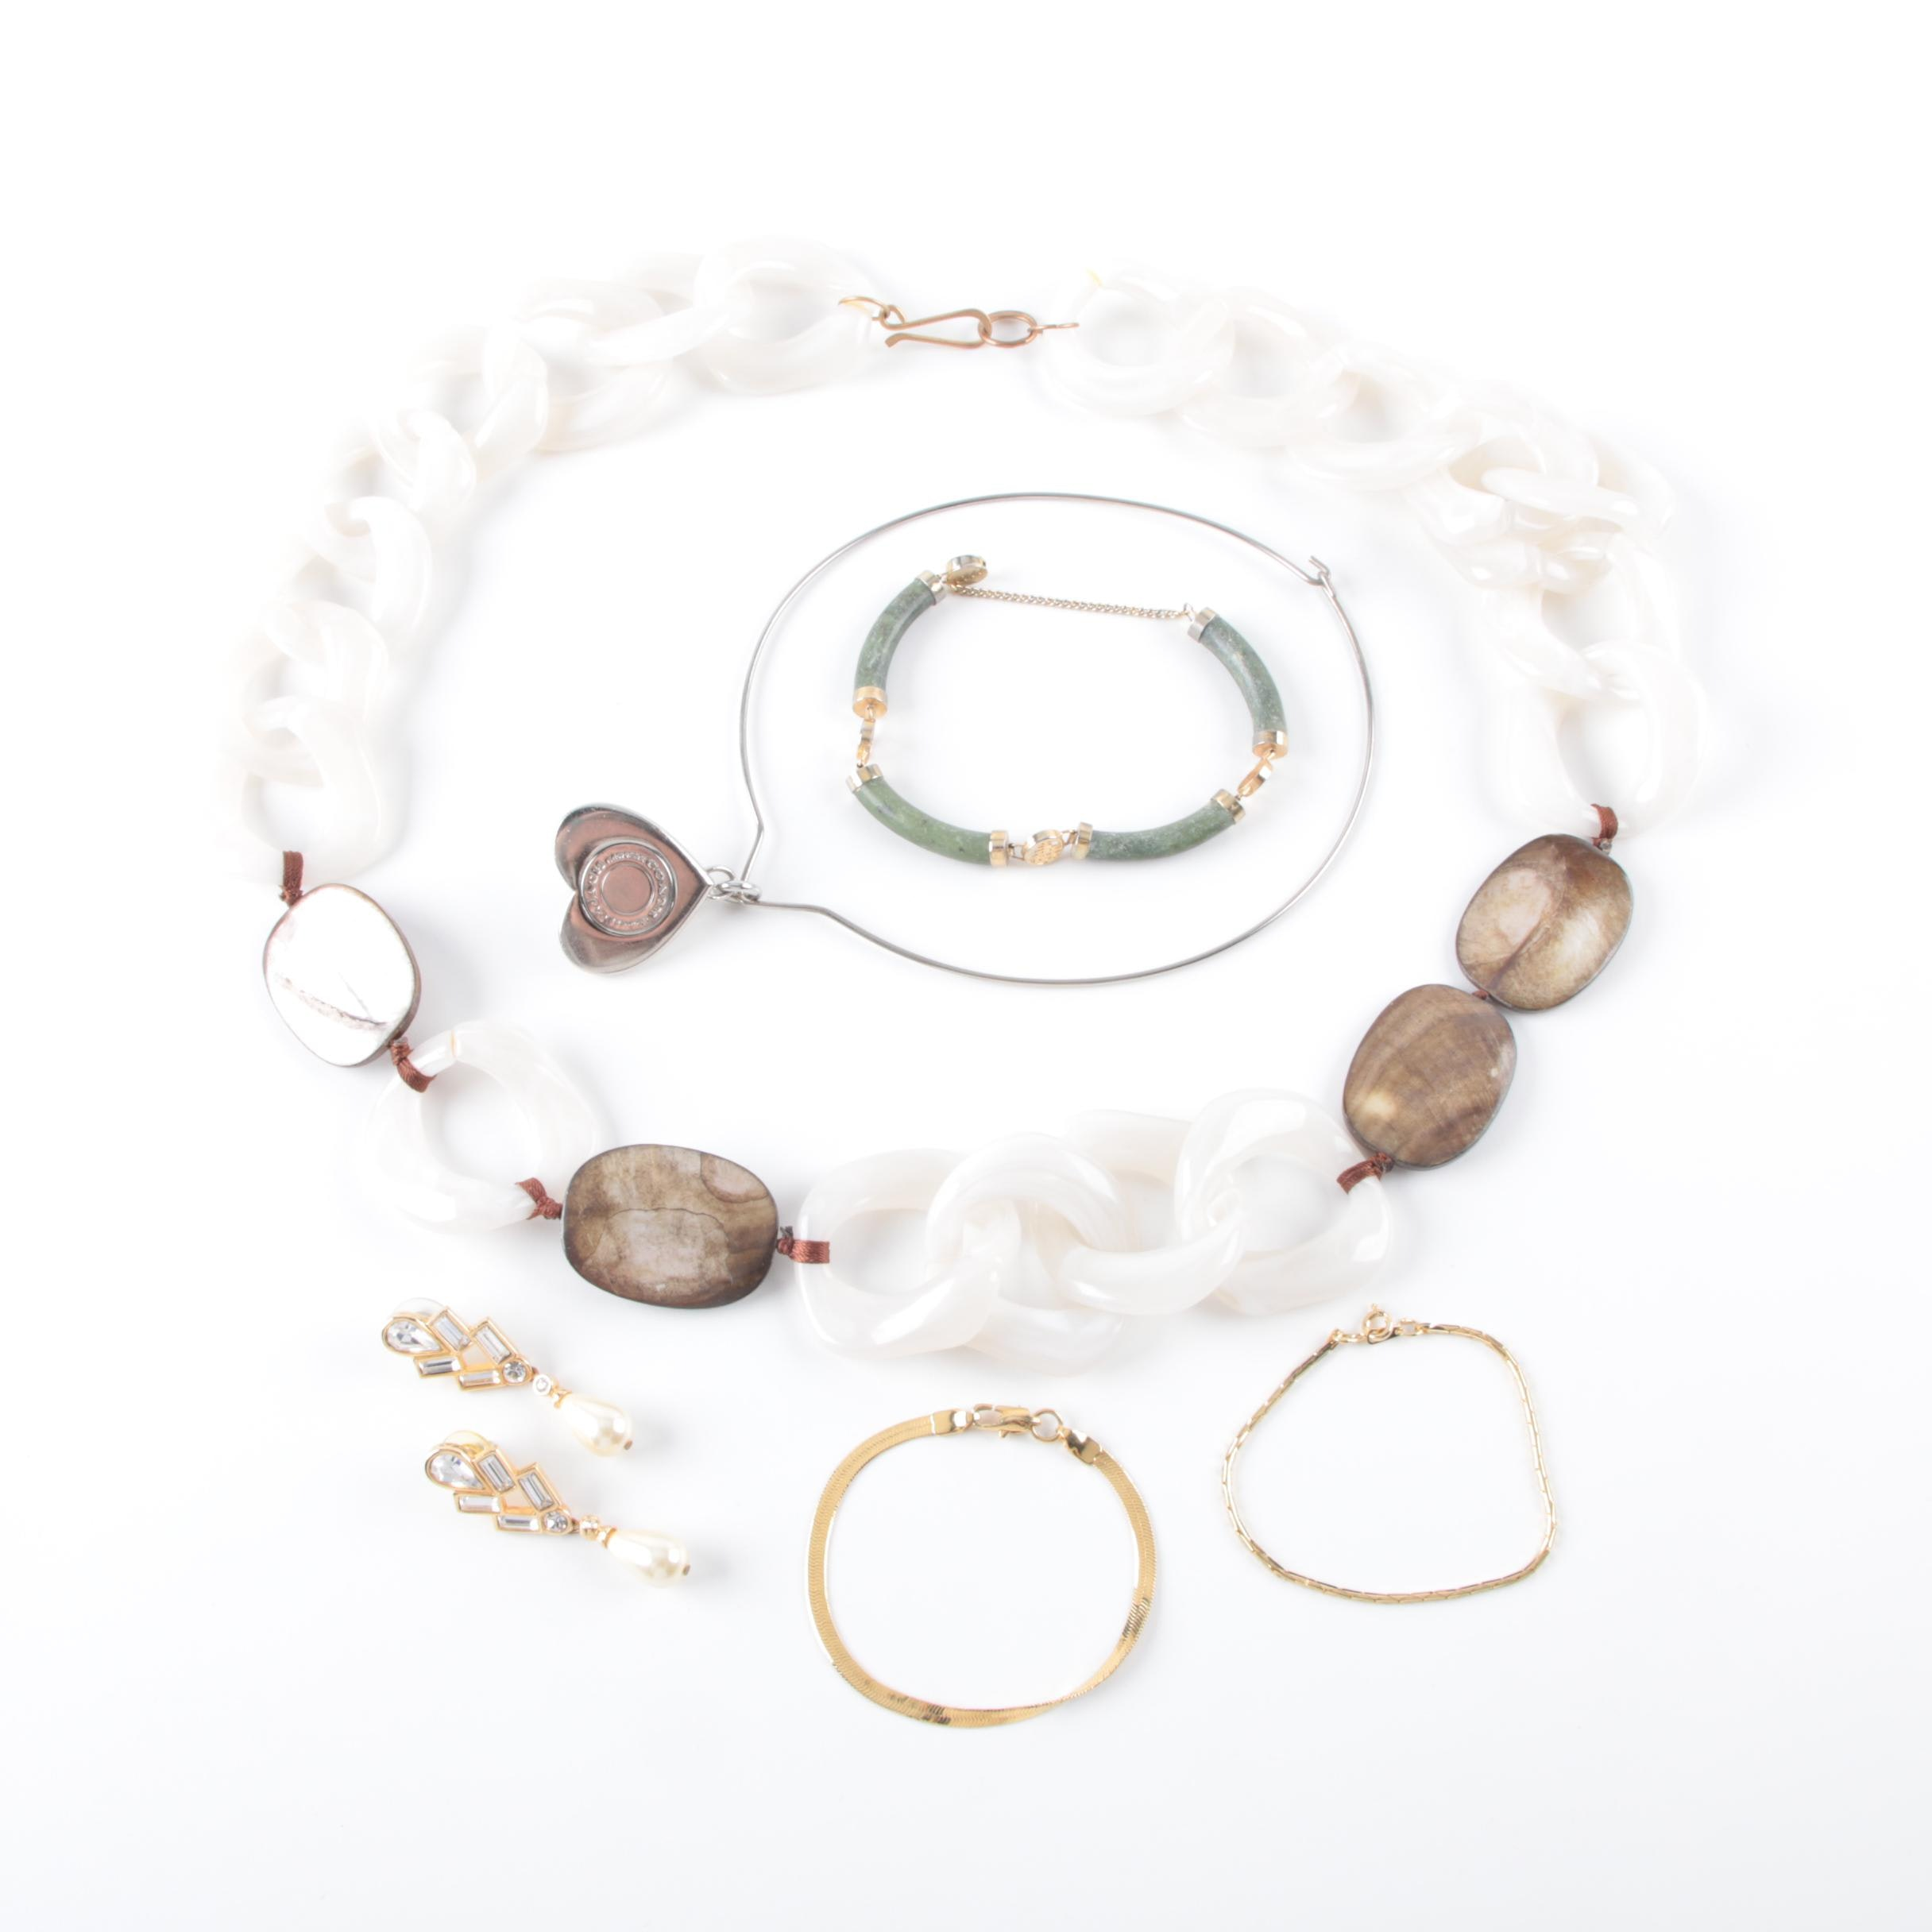 Collection of Costume Jewelry Featuring Coach Necklace